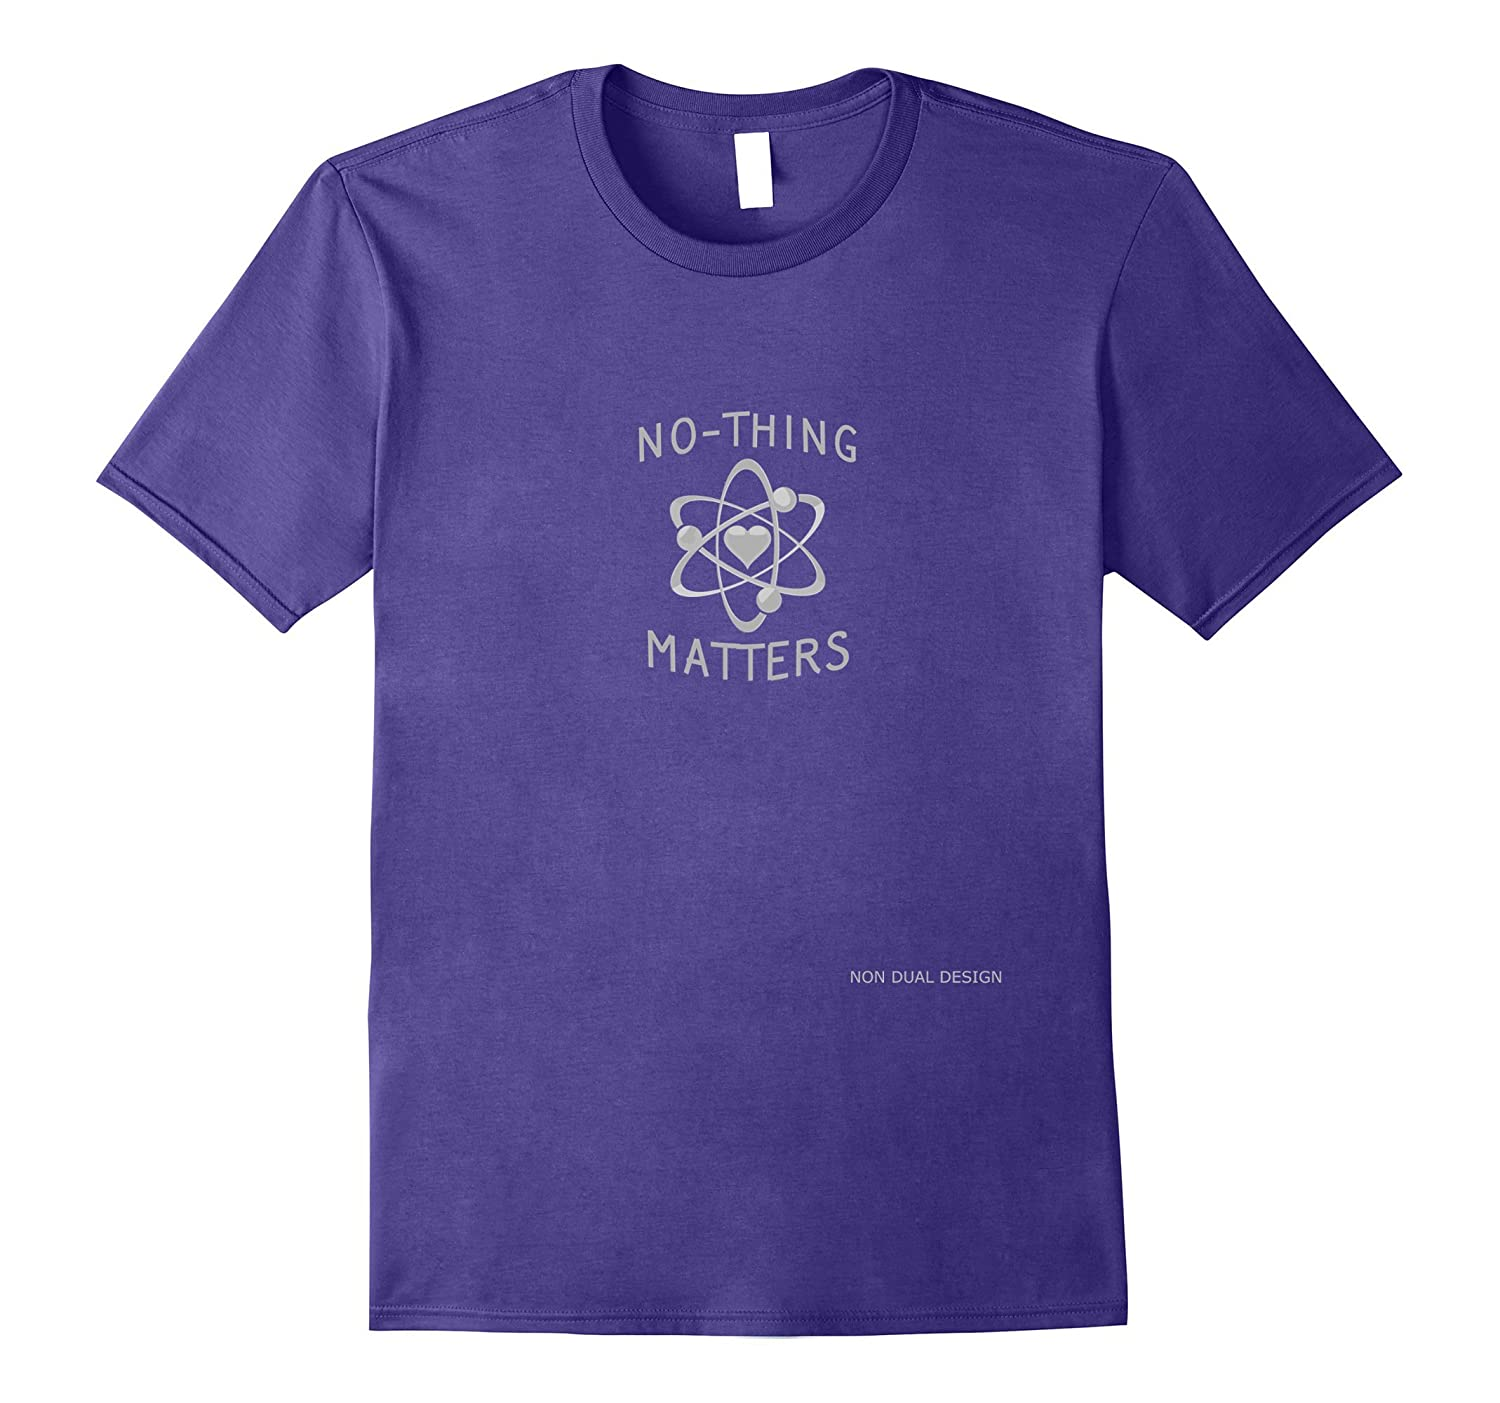 No-thing Matters - Heart Atom - Funny TShirt Advaita - V20-Vaci